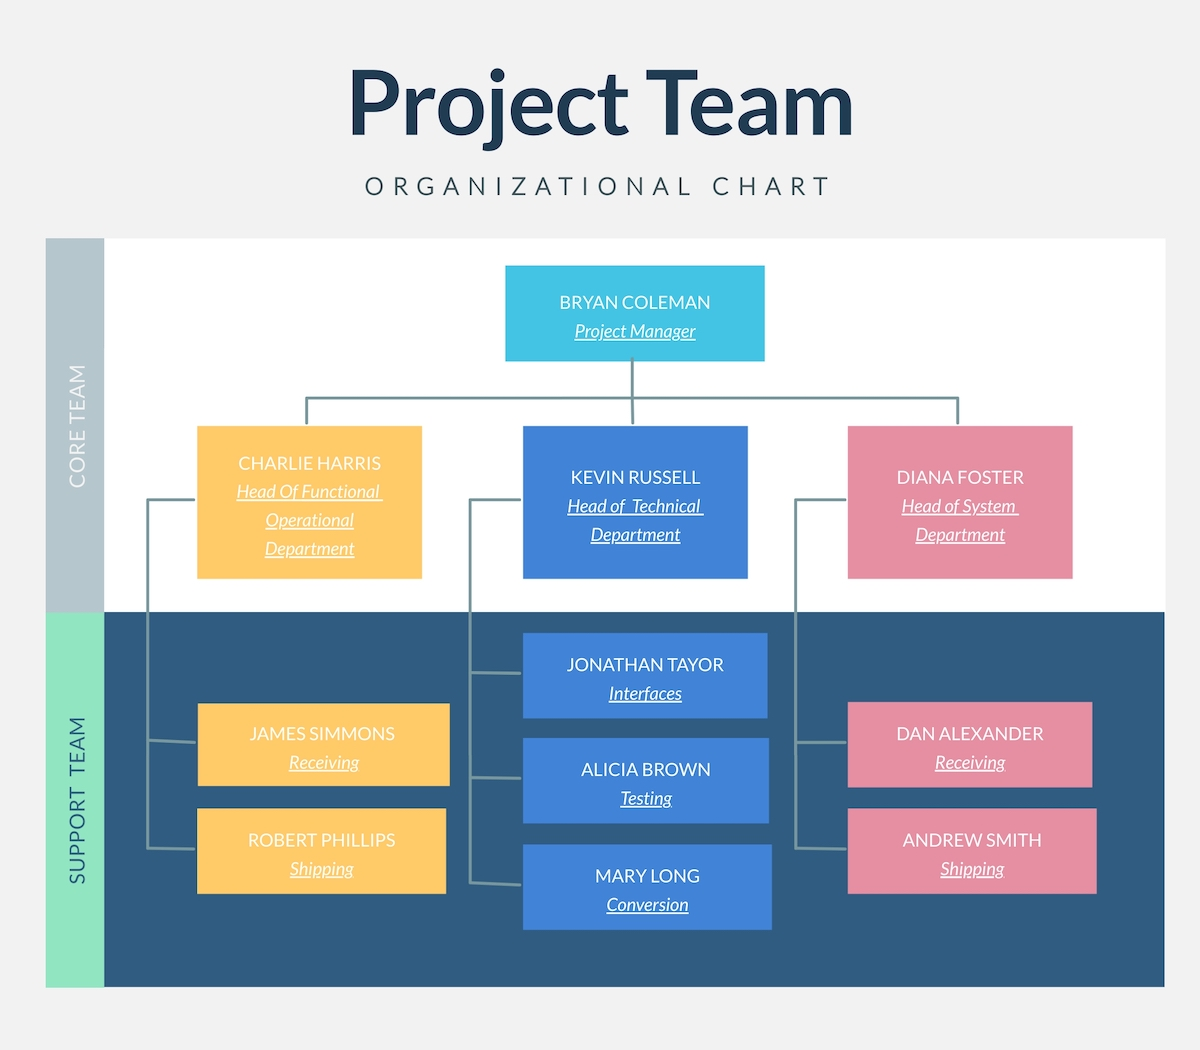 A project team organizational chart template available in Visme.